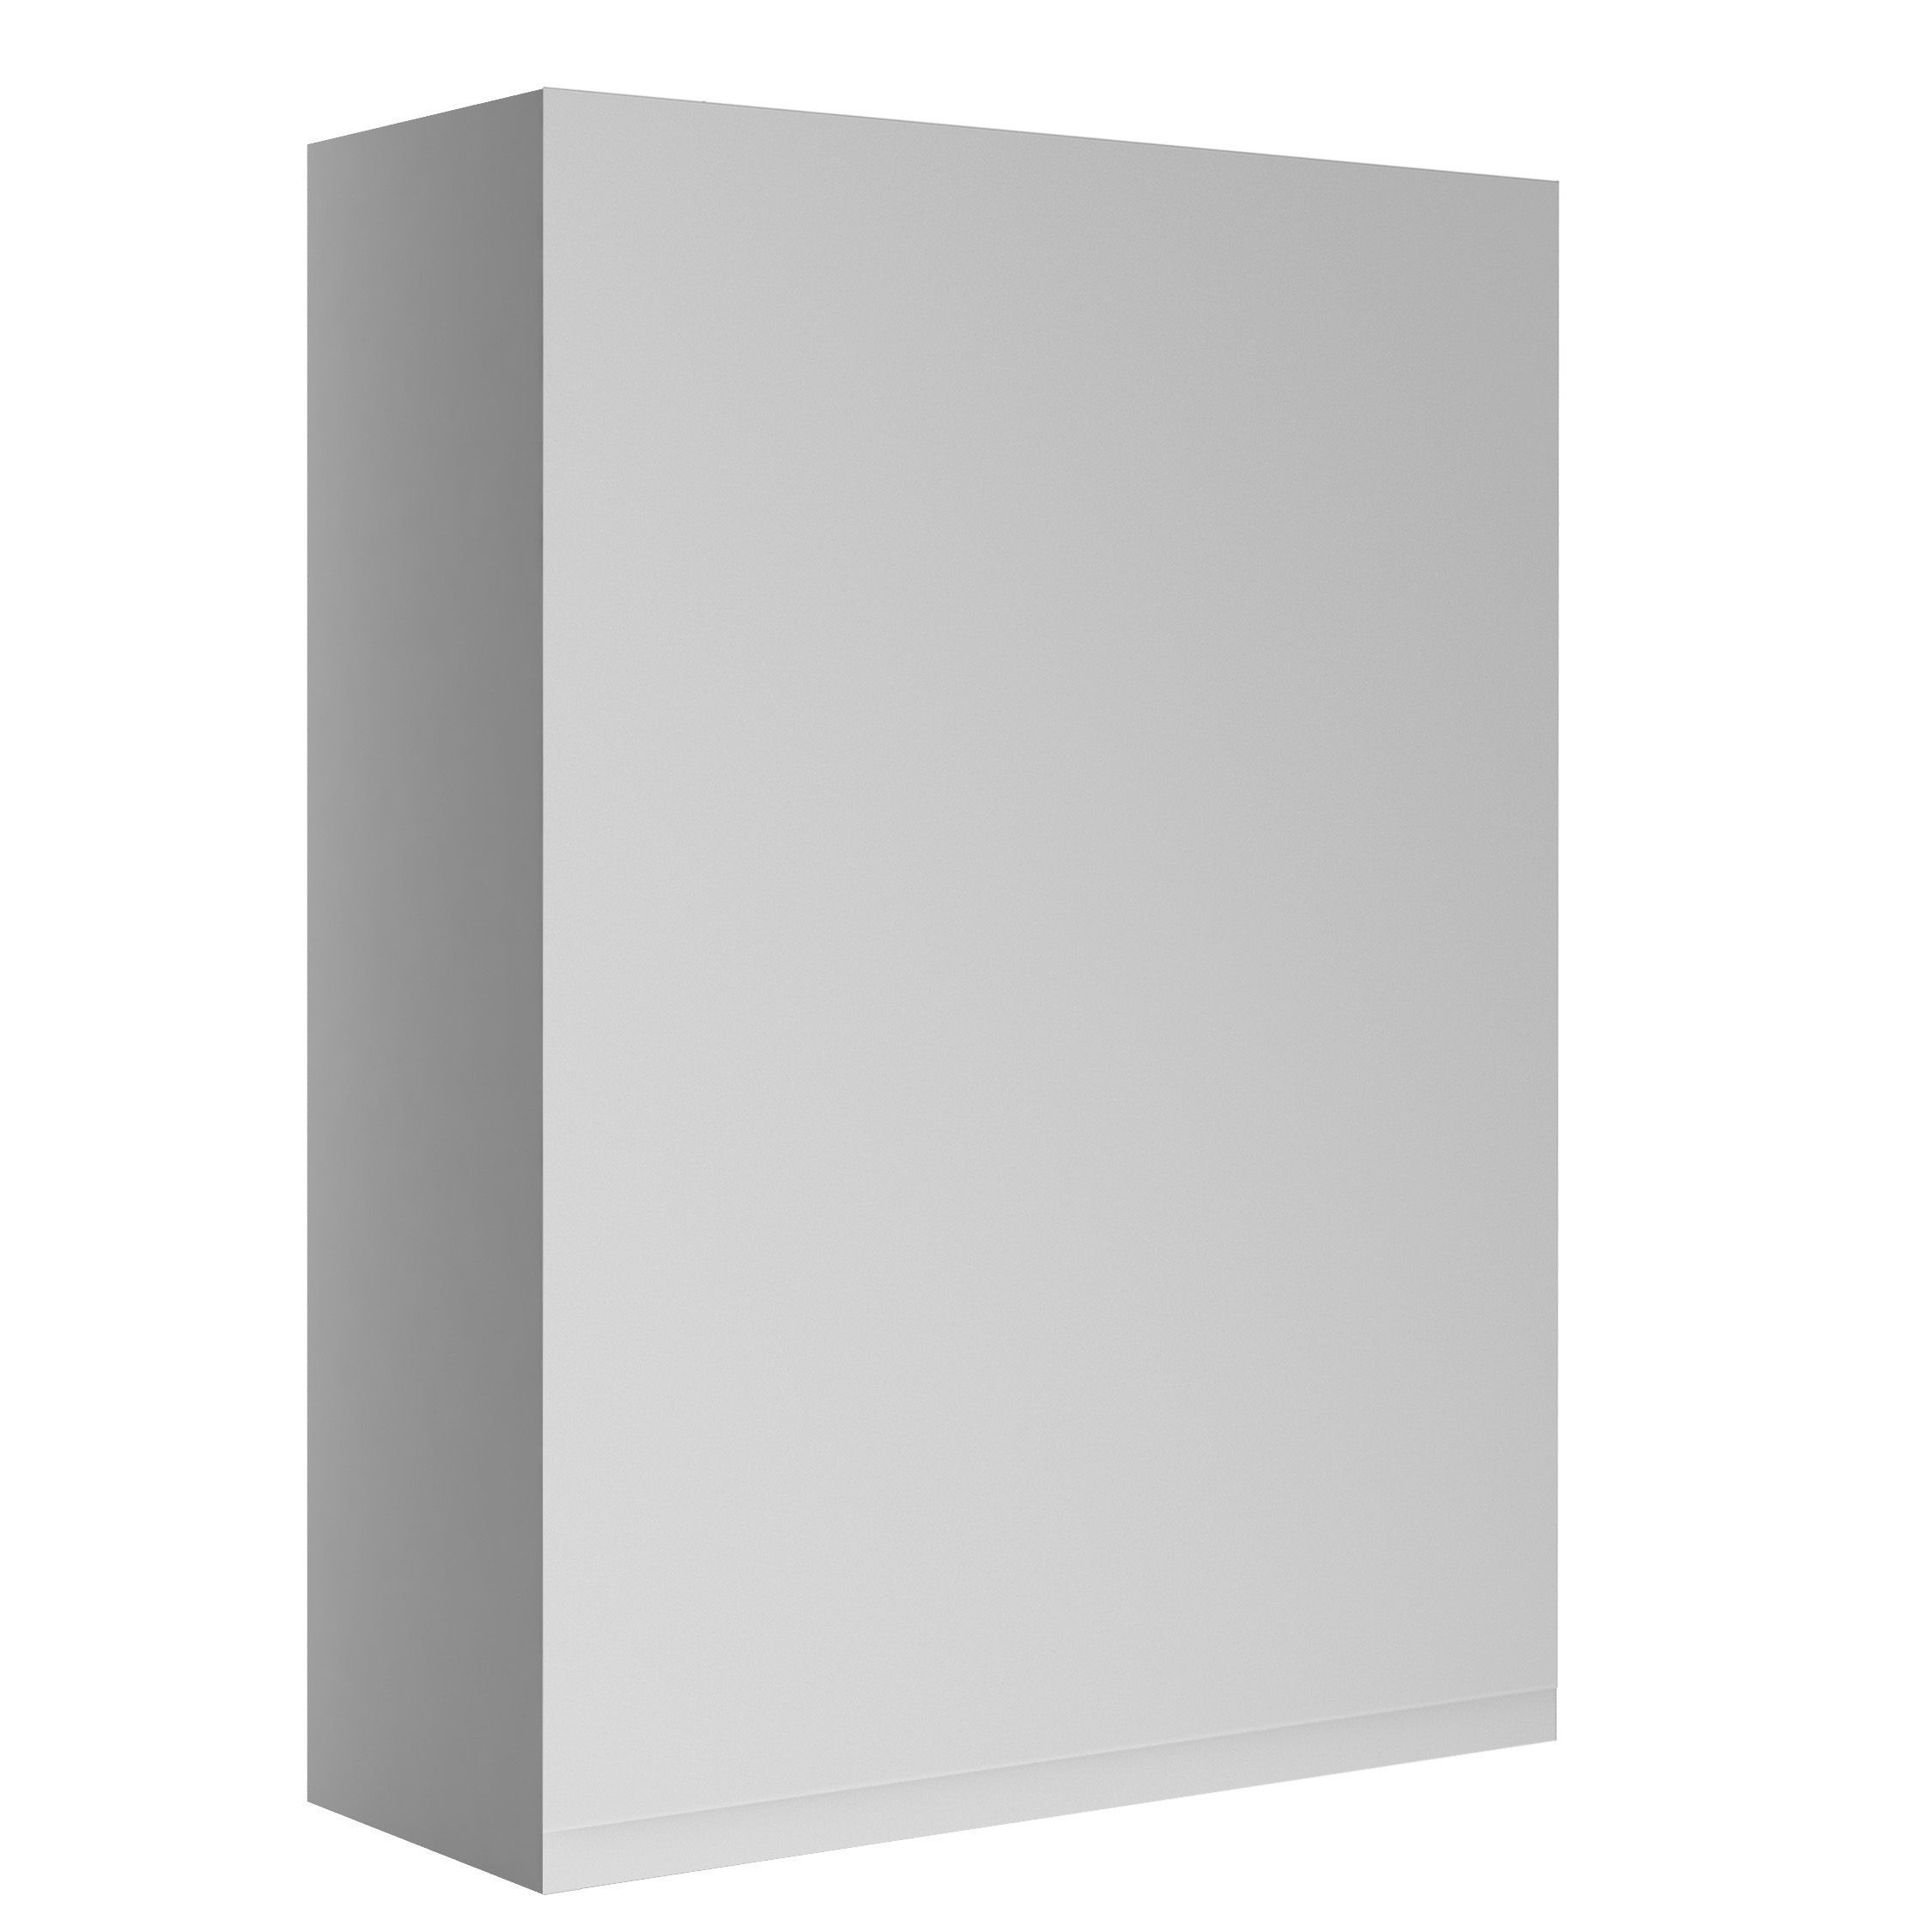 Cooke Lewis Appleby Gloss Stone Wall Cabinet